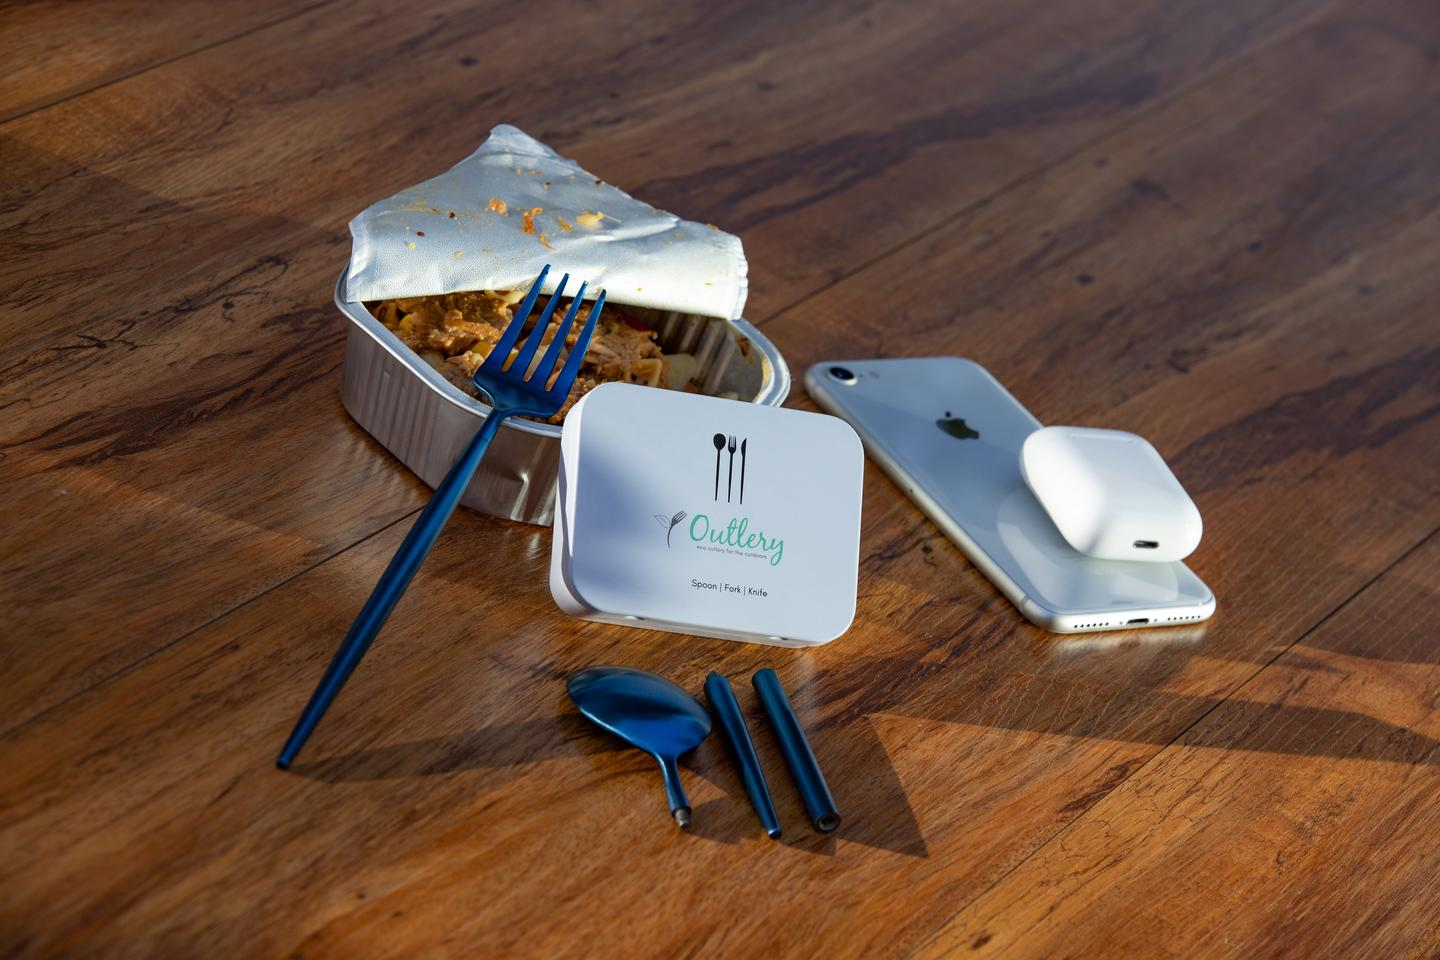 Plastic cutlery may well be convenient, but it is certainly wasteful and as more and more research shows, detrimental to the environment – Outlery is an alternative